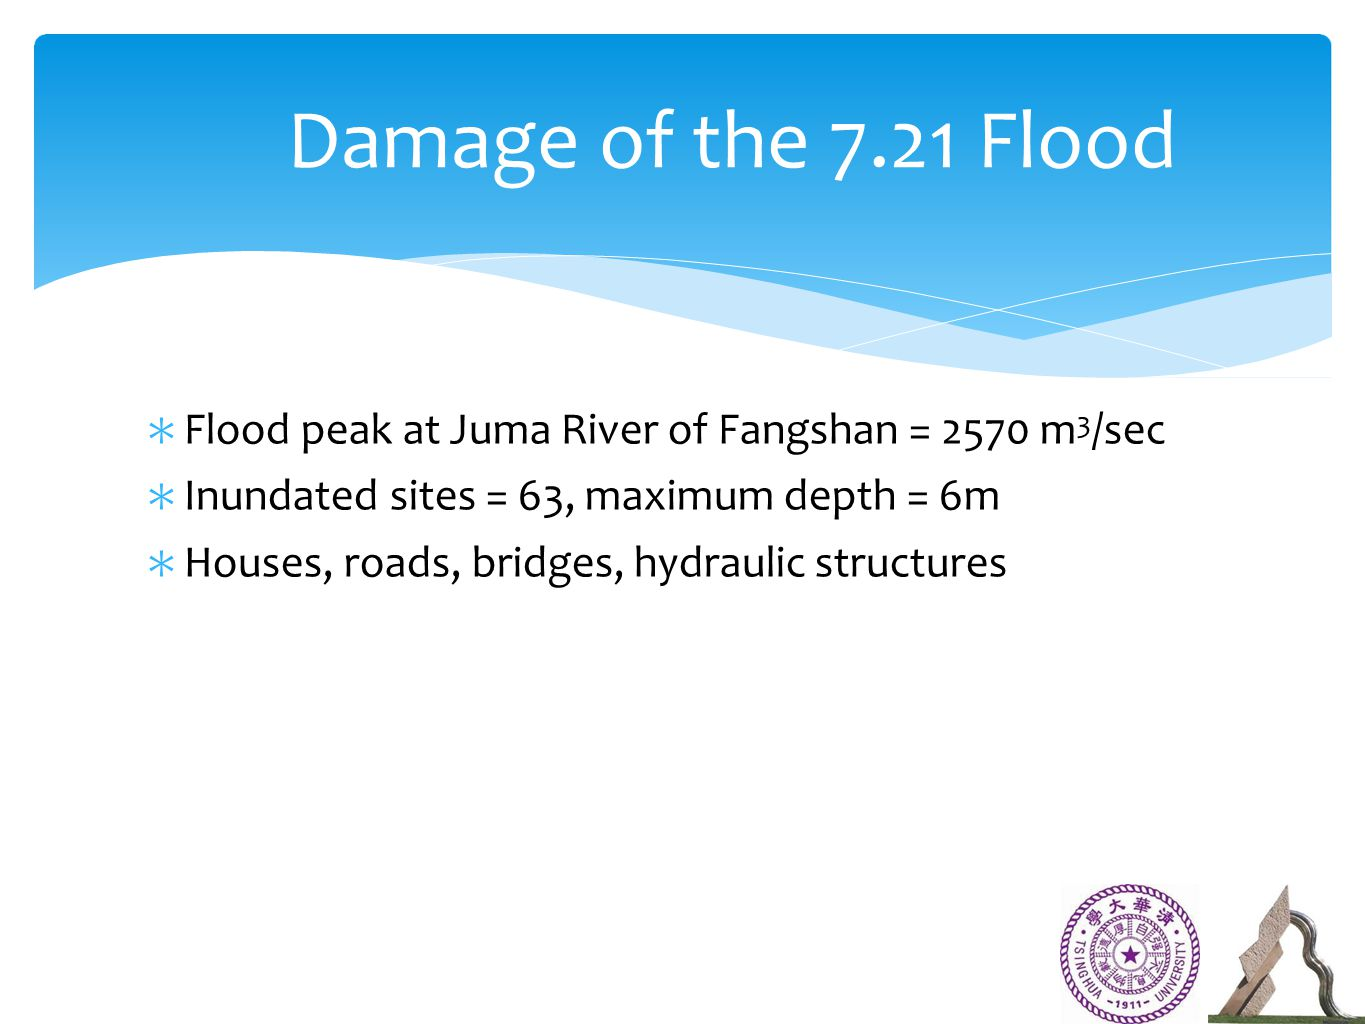 ∗ Flood peak at Juma River of Fangshan = 2570 m 3 /sec ∗ Inundated sites = 63, maximum depth = 6m ∗ Houses, roads, bridges, hydraulic structures Damag